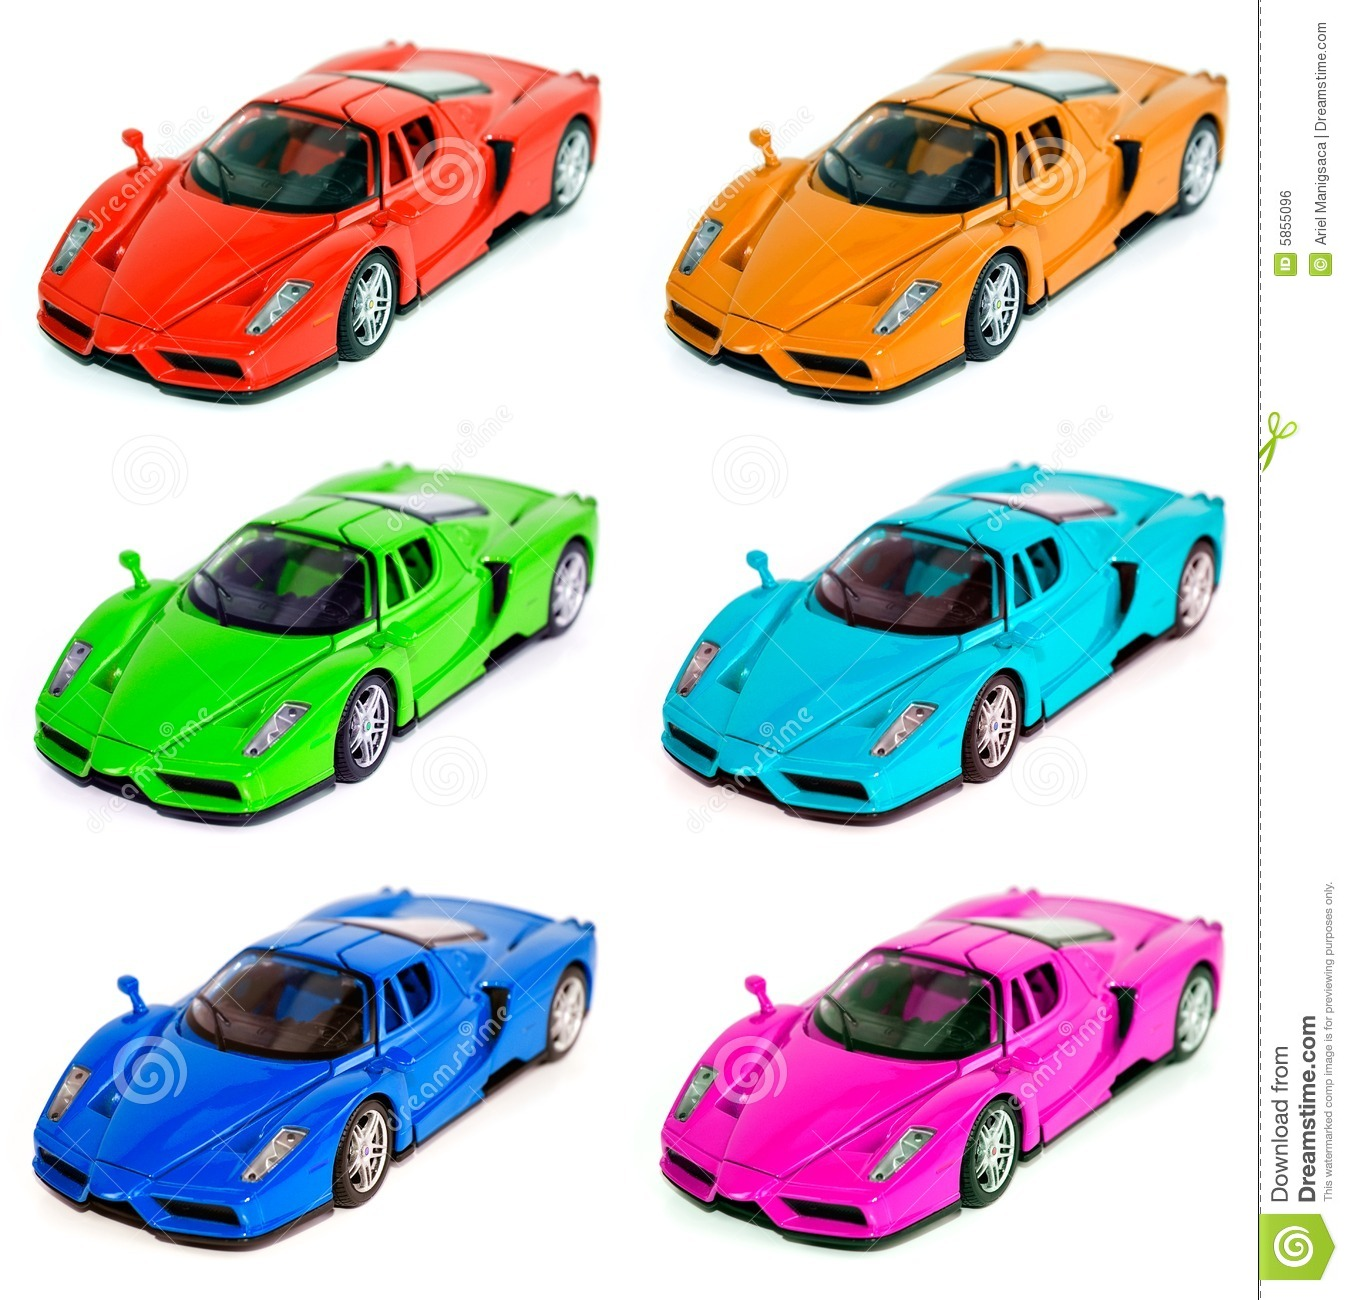 Toy Race Cars : Toy car clipart panda free images